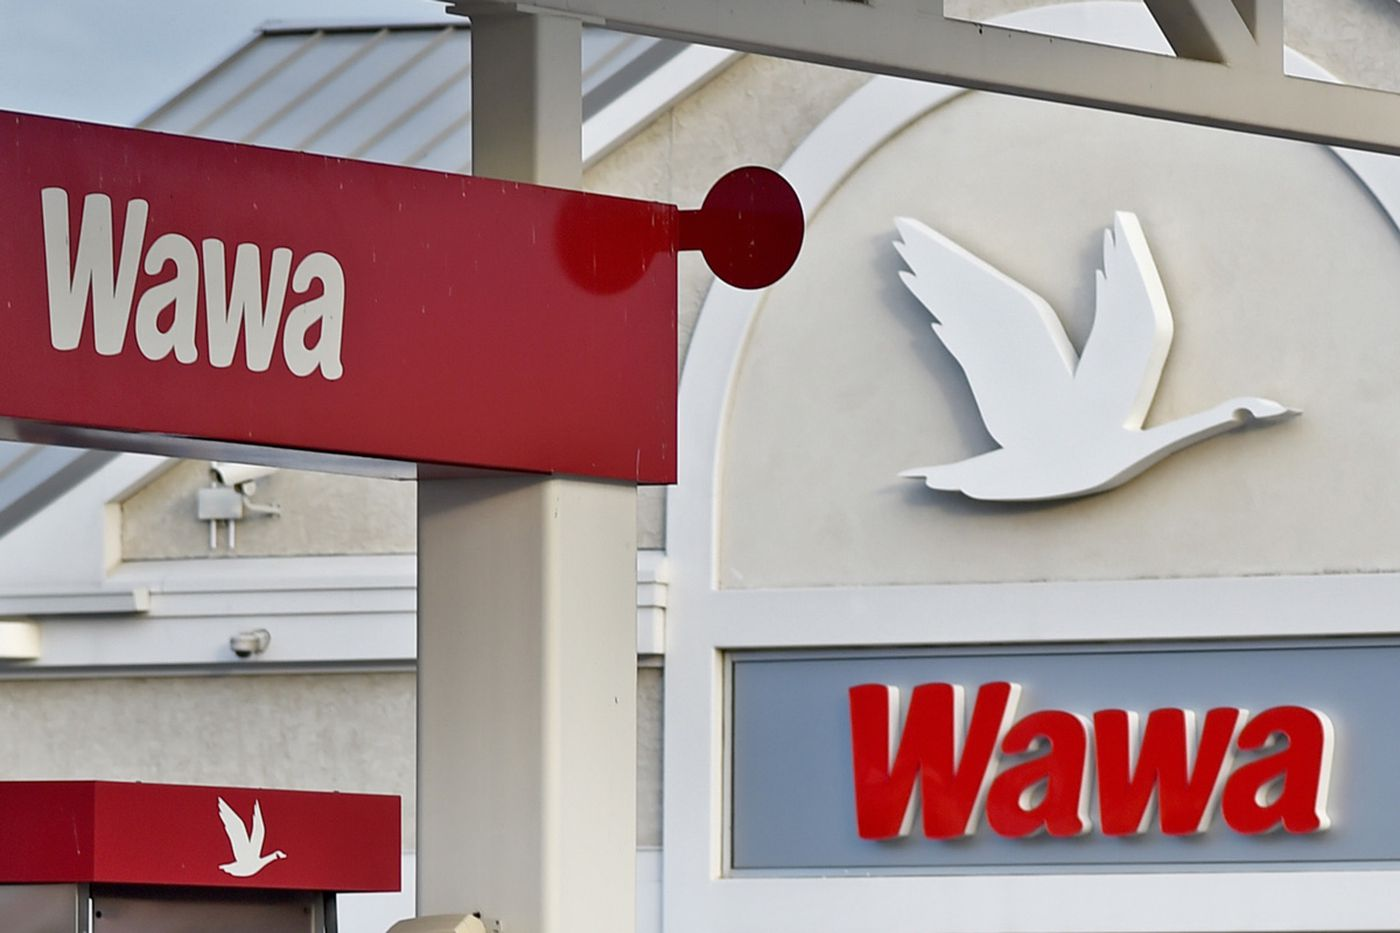 Super-sized Wawas not always wanted in Philadelphia suburbs